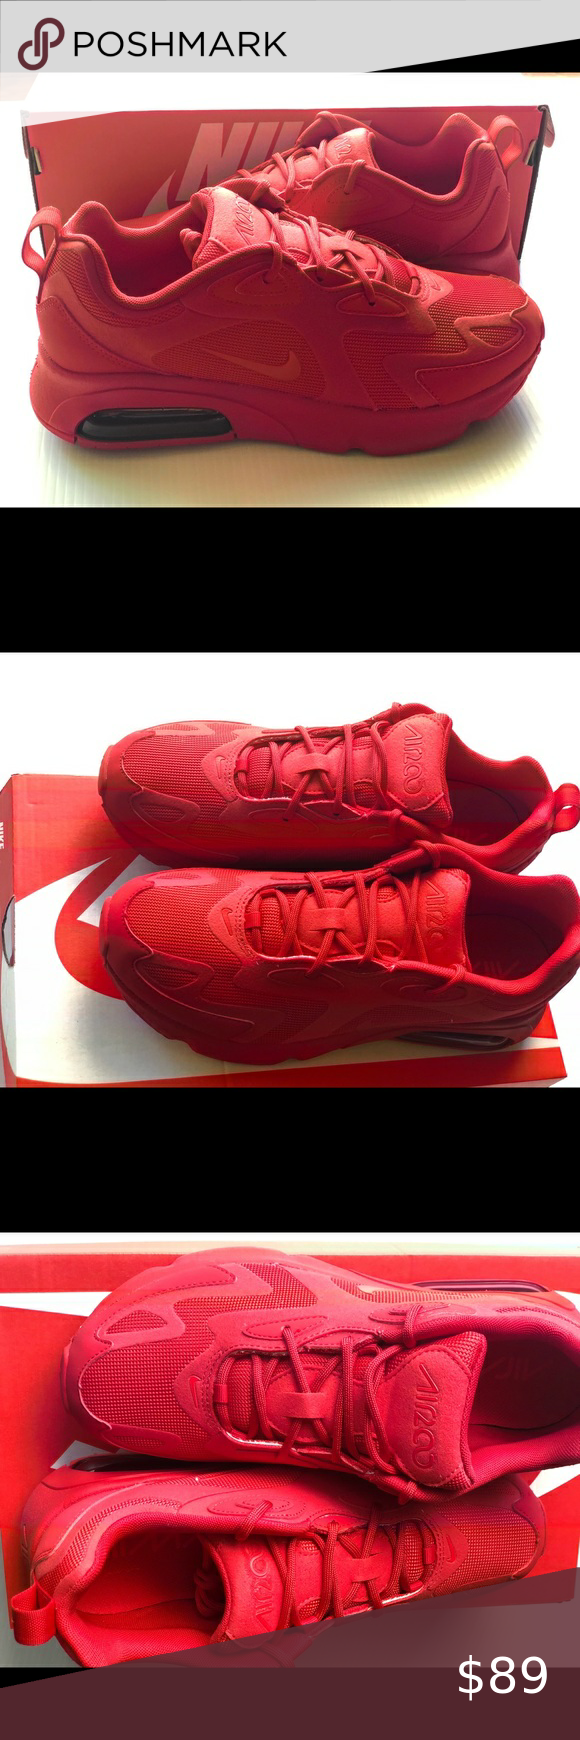 Sold! Nike Air Max 200 red women's in 2020 | Red nike shoes ...